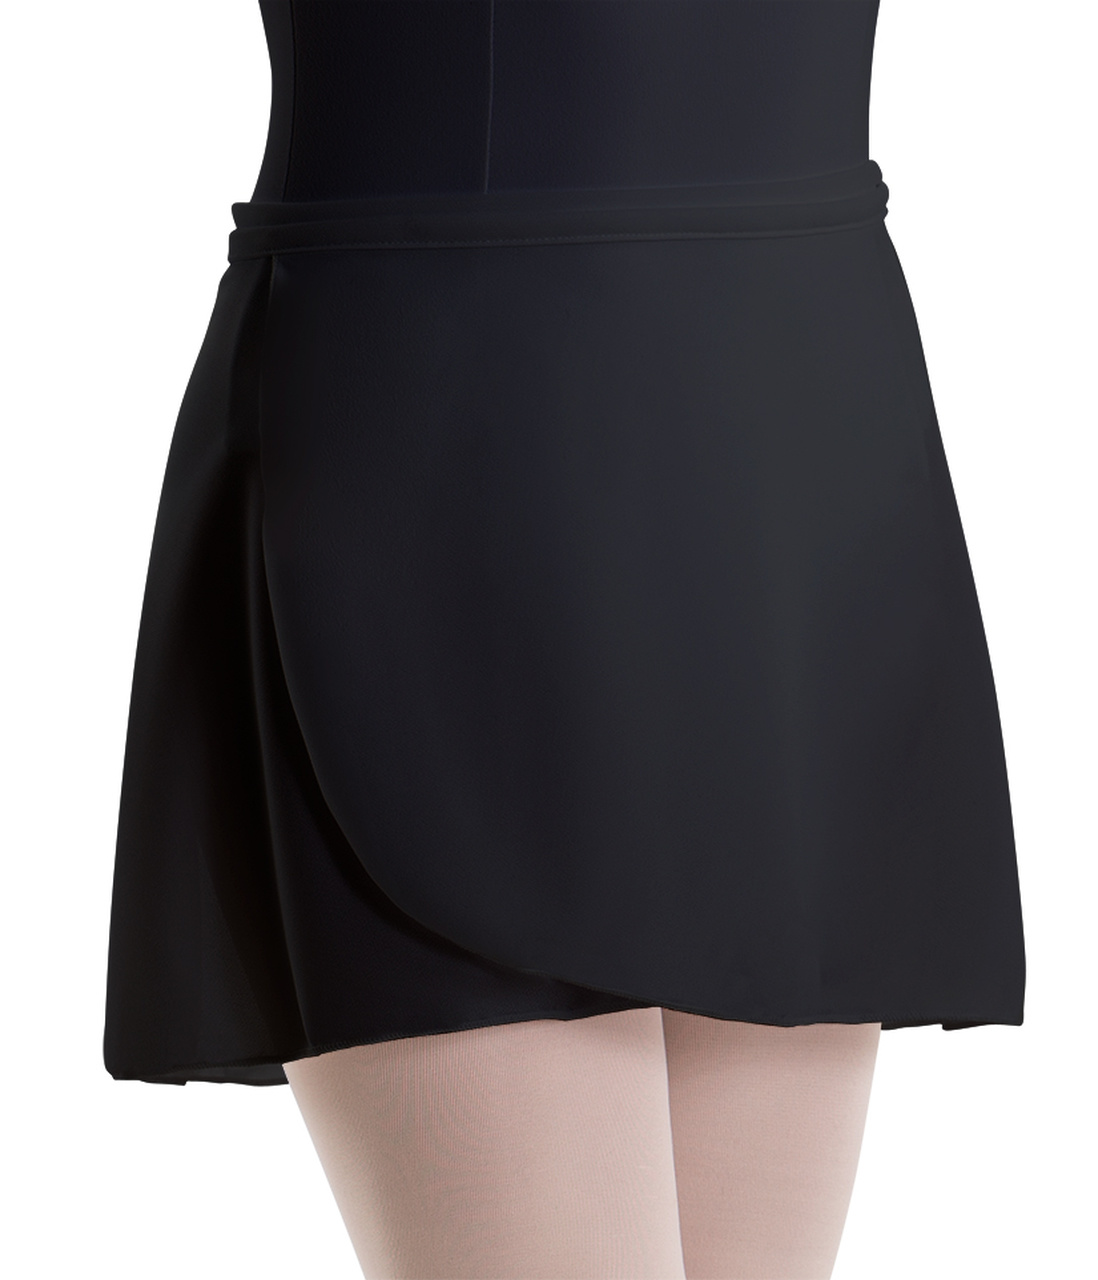 MOTIONWEAR WRAP TIE SHORT SKIRT (1021)